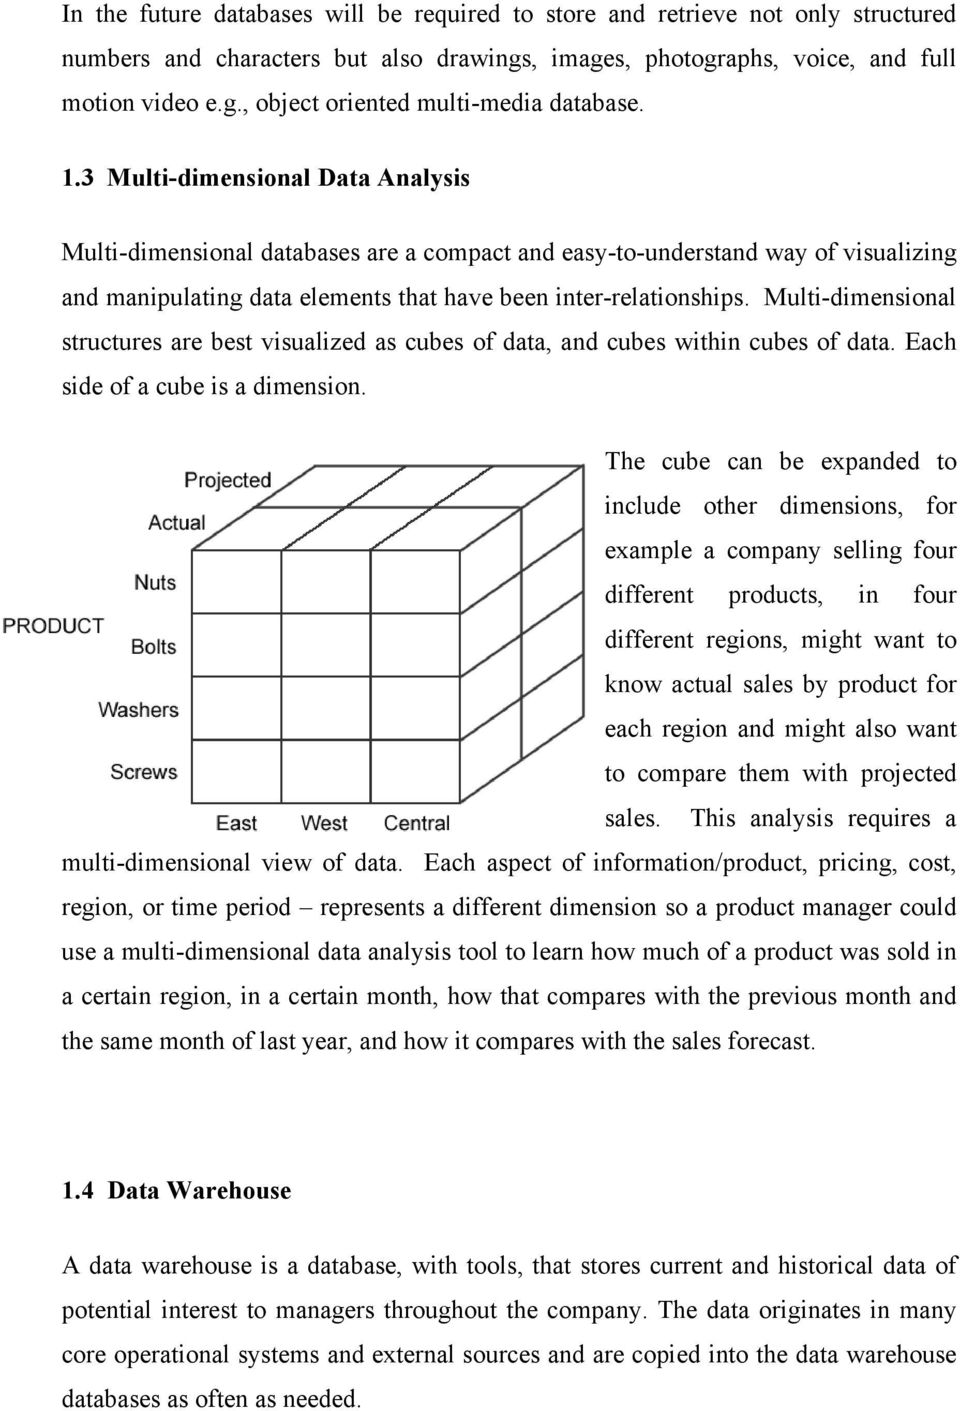 Multi-dimensional structures are best visualized as cubes of data, and cubes within cubes of data. Each side of a cube is a dimension.